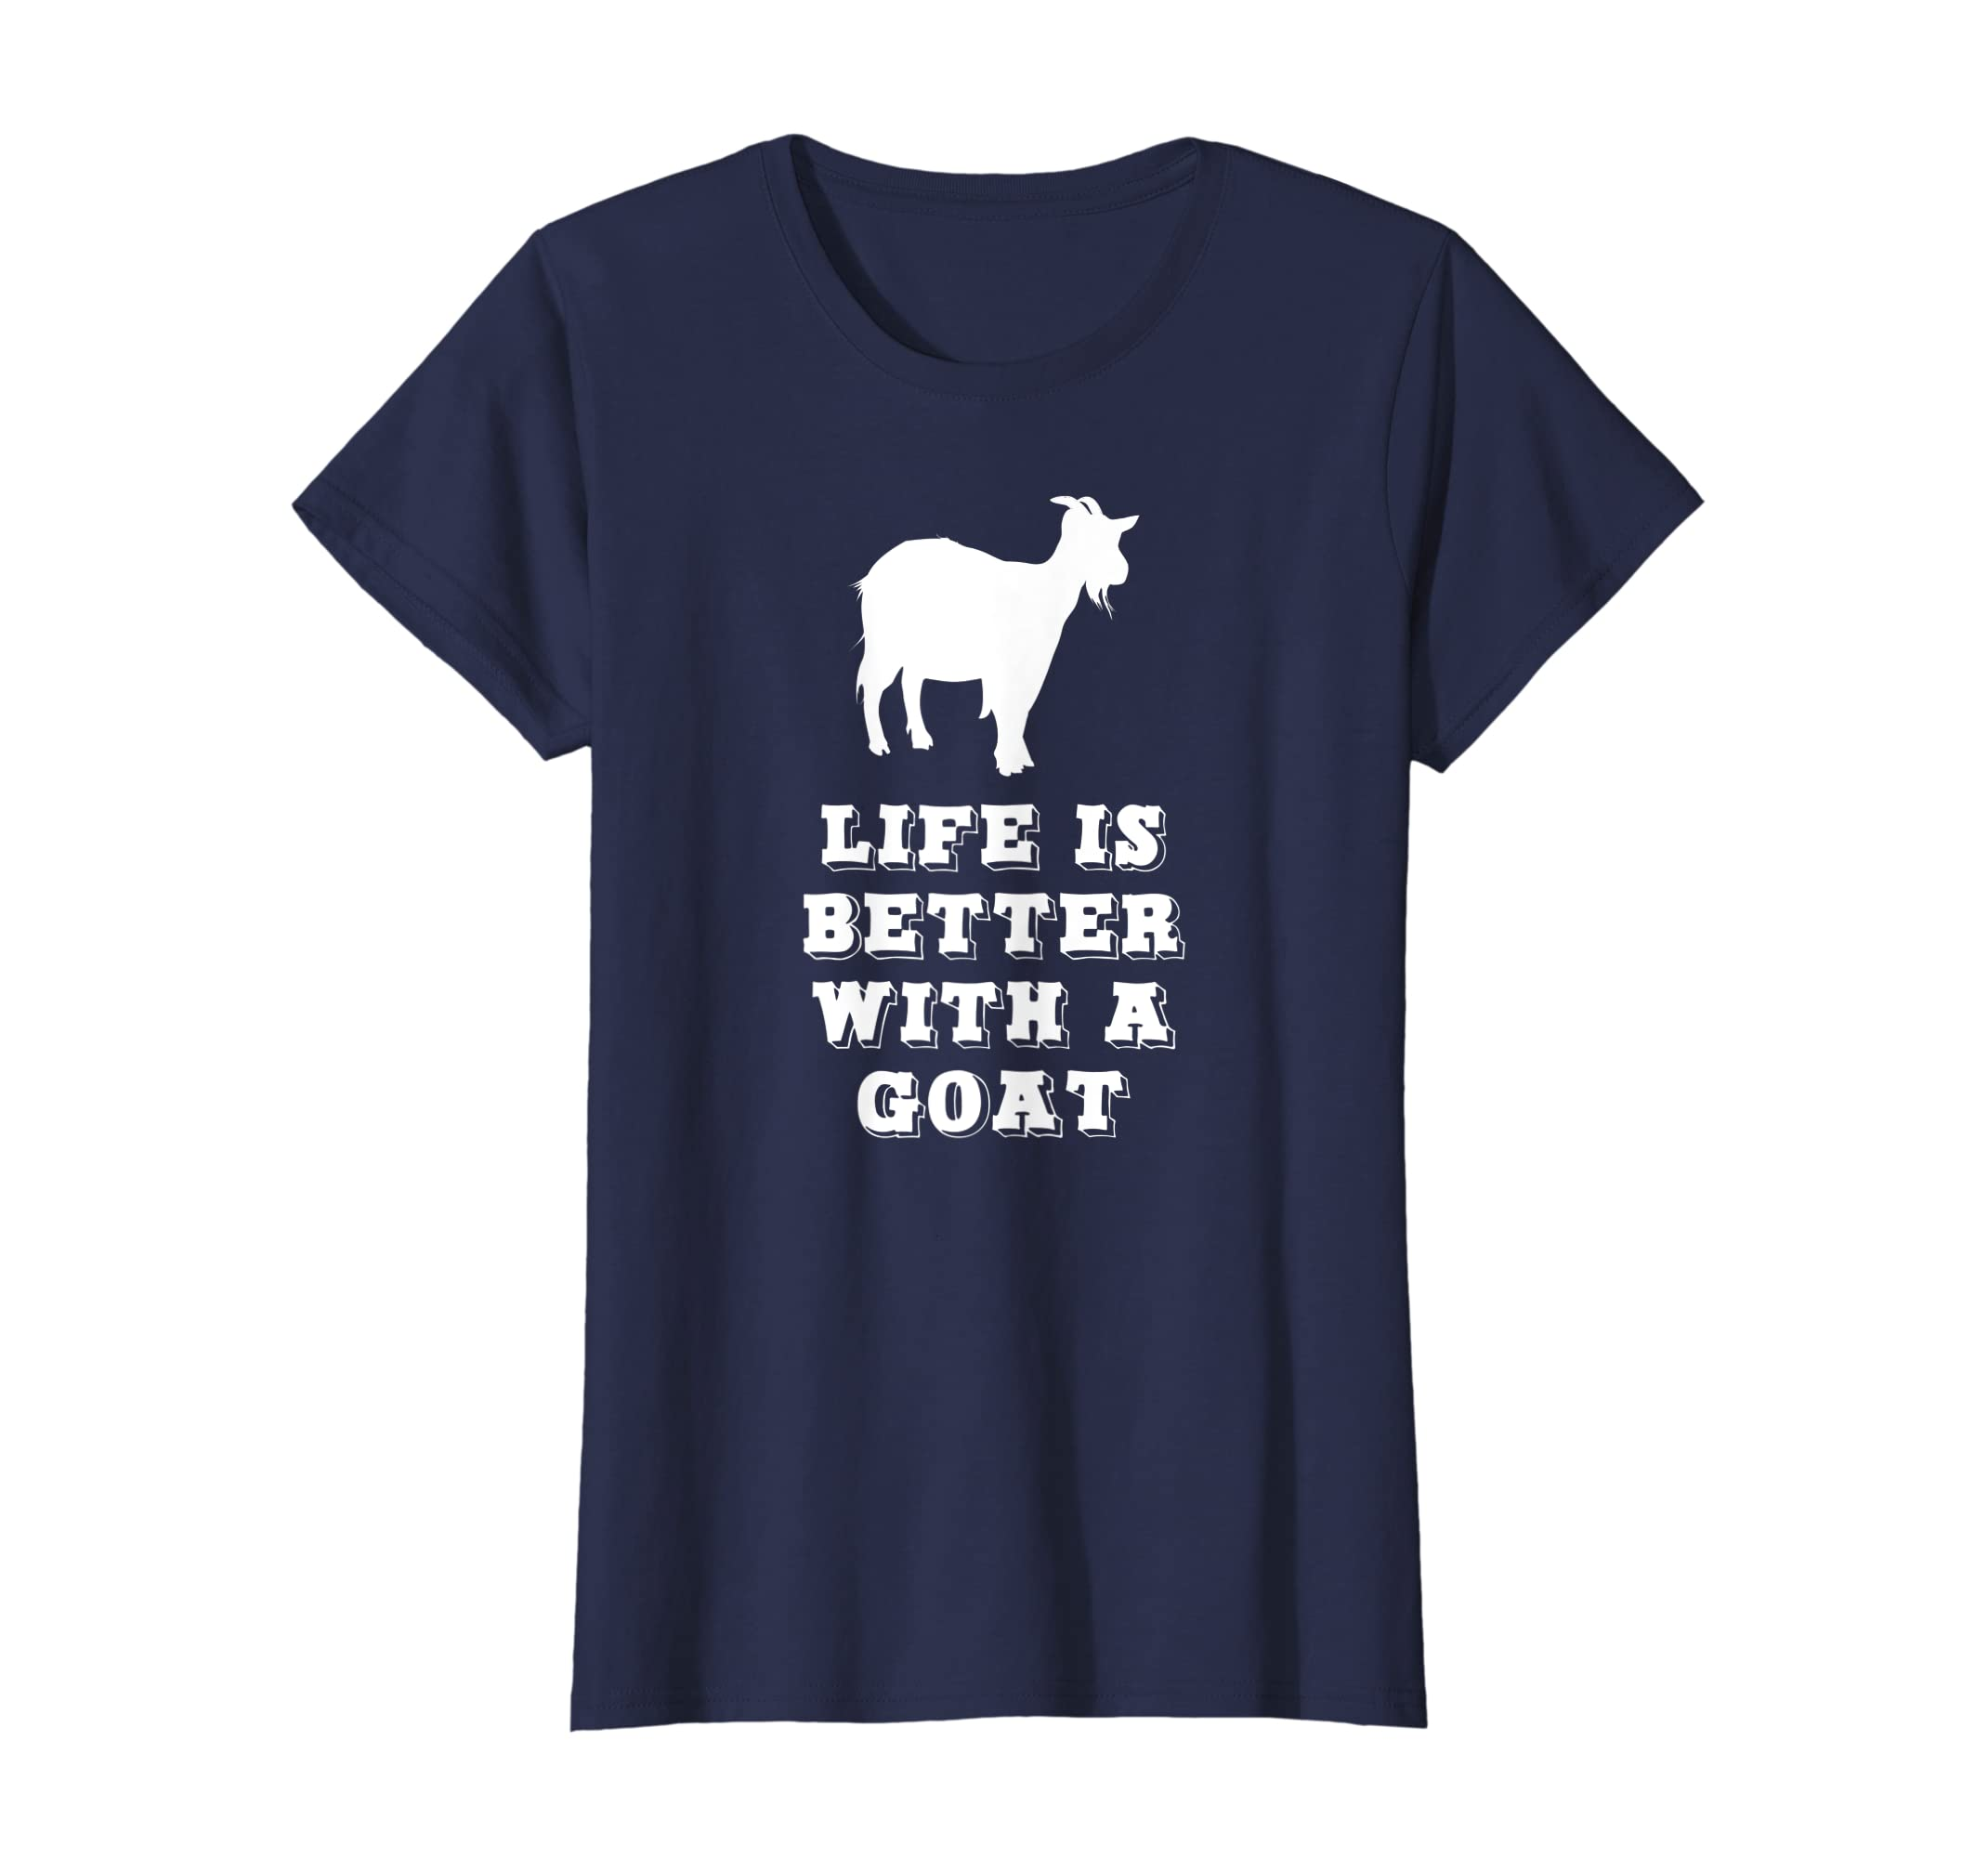 f1ff7028b Amazon.com: Life Is Better With A Goat Lover Gift T-Shirt: Clothing